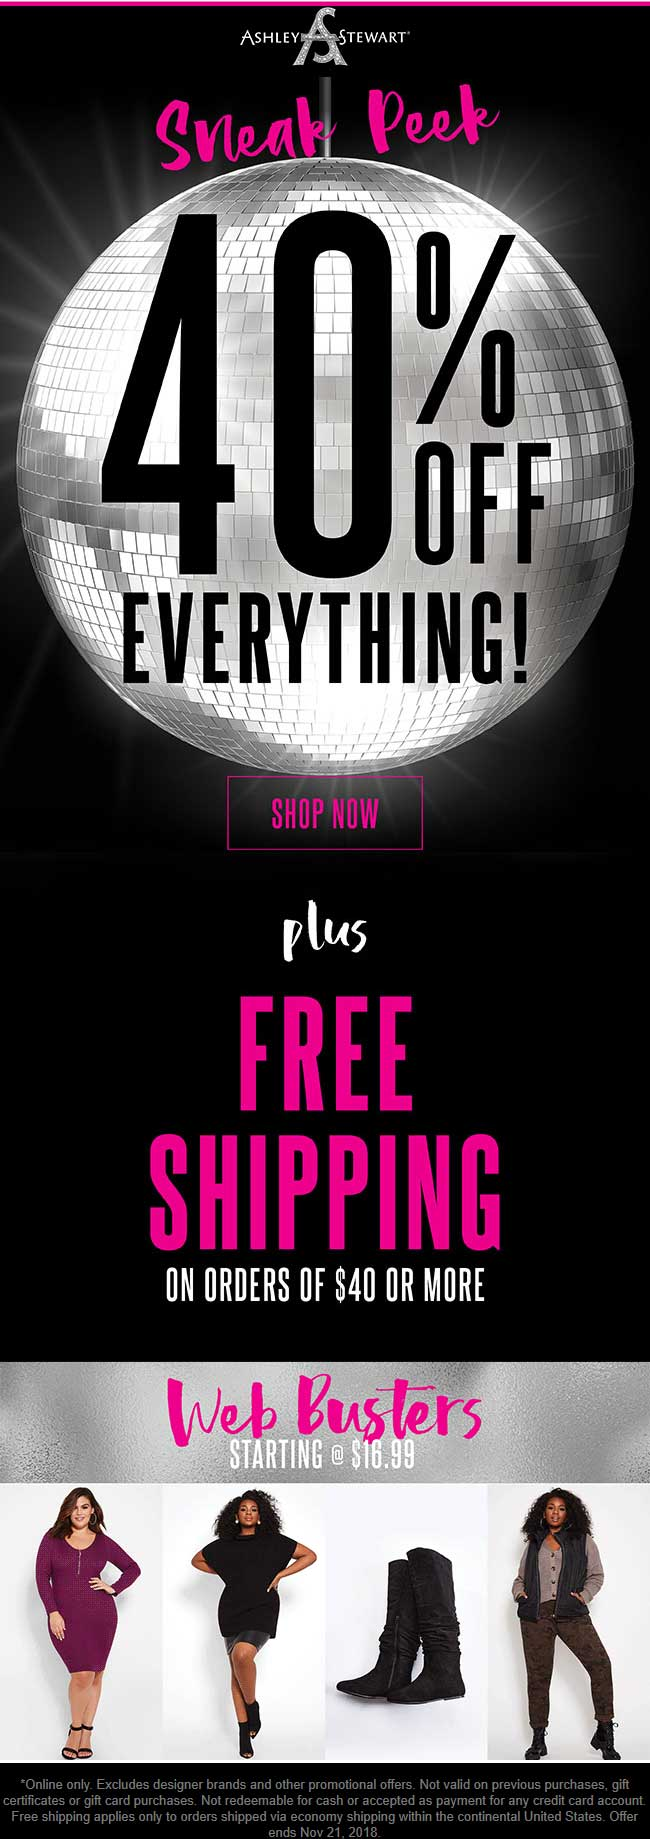 Ashley Stewart Coupon October 2019 40% off everything online at Ashley Stewart